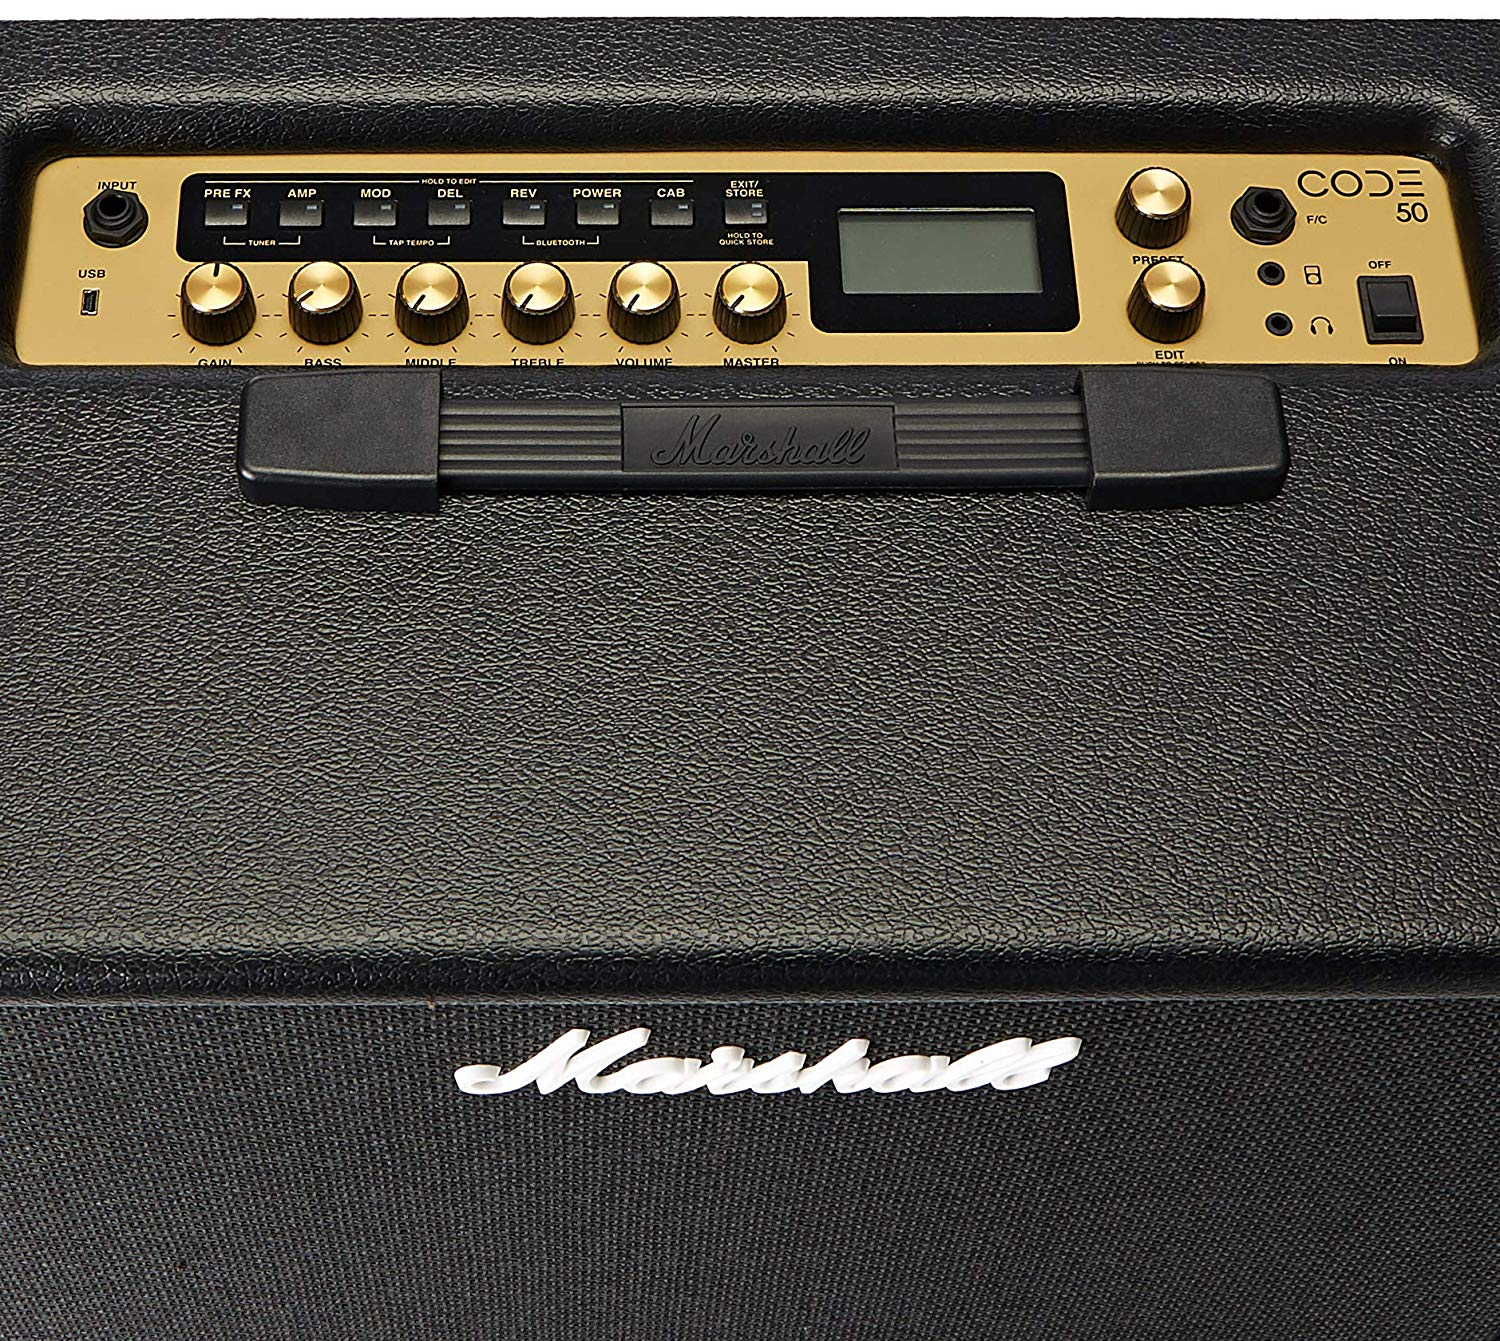 Control Knobs on the Marshall Code 50W Digital Combo Amplifier